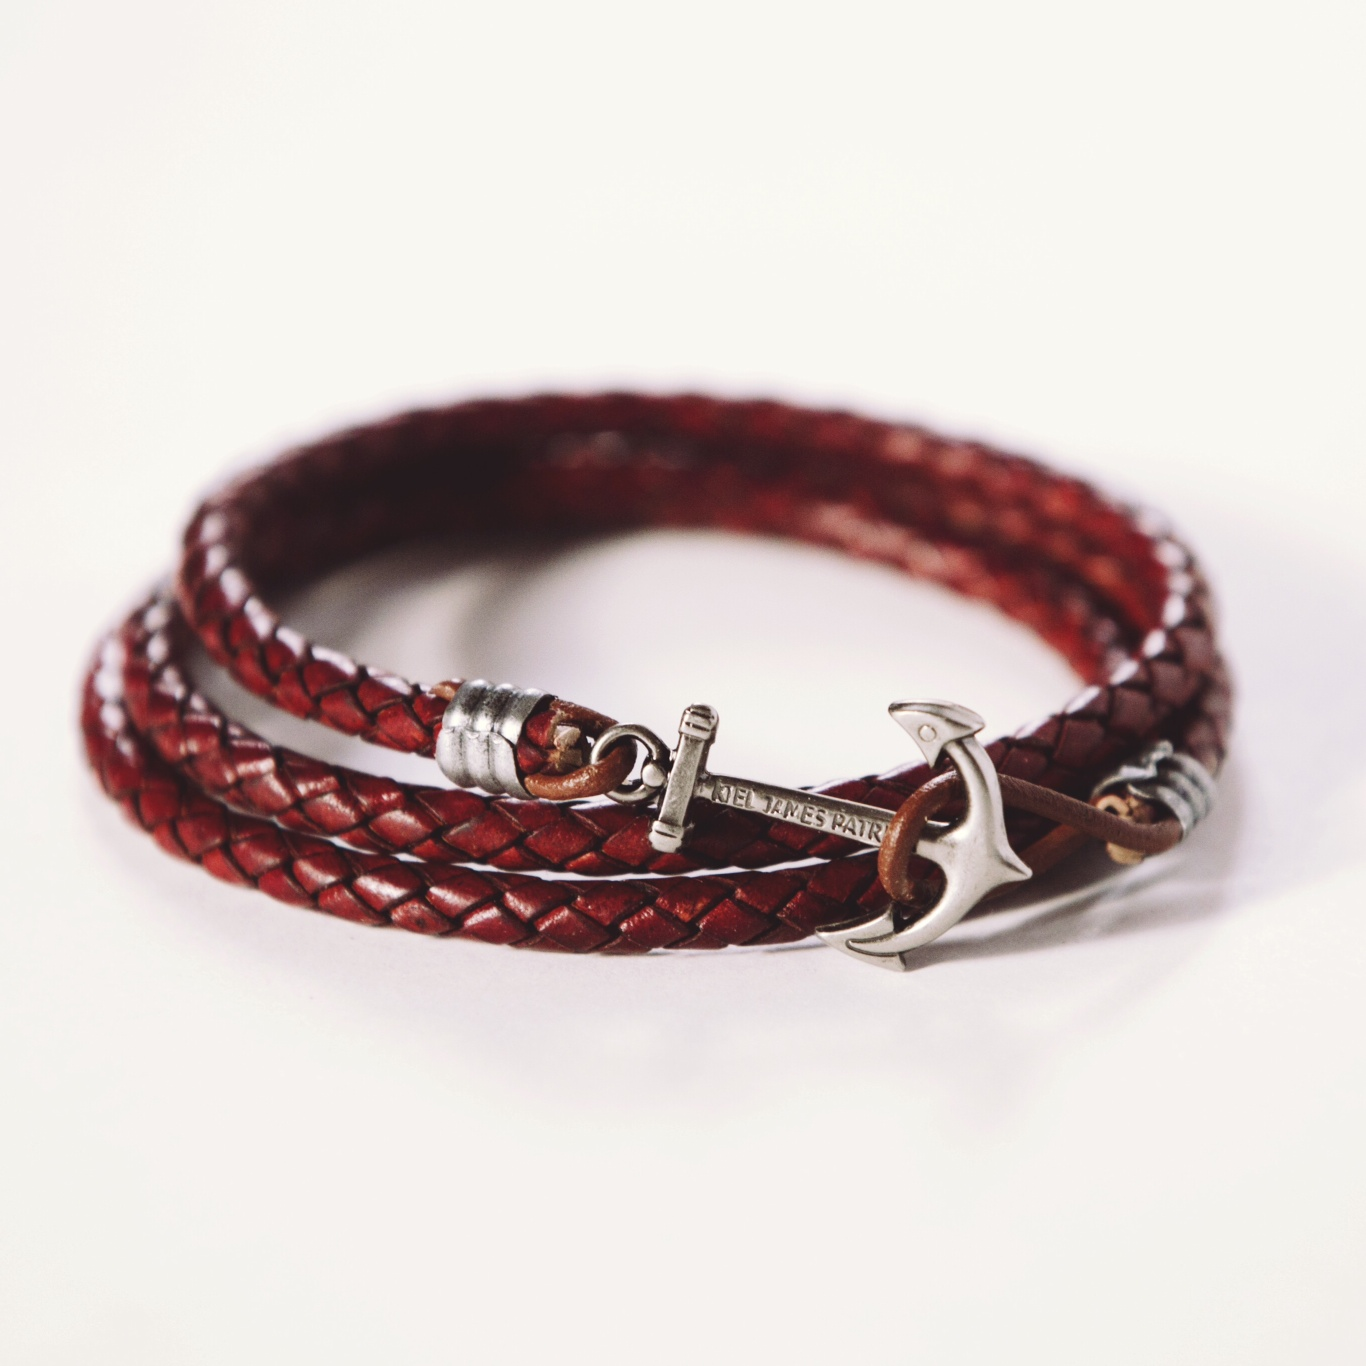 KJP + Scout Sixteen - Leather Anchor Bracelet